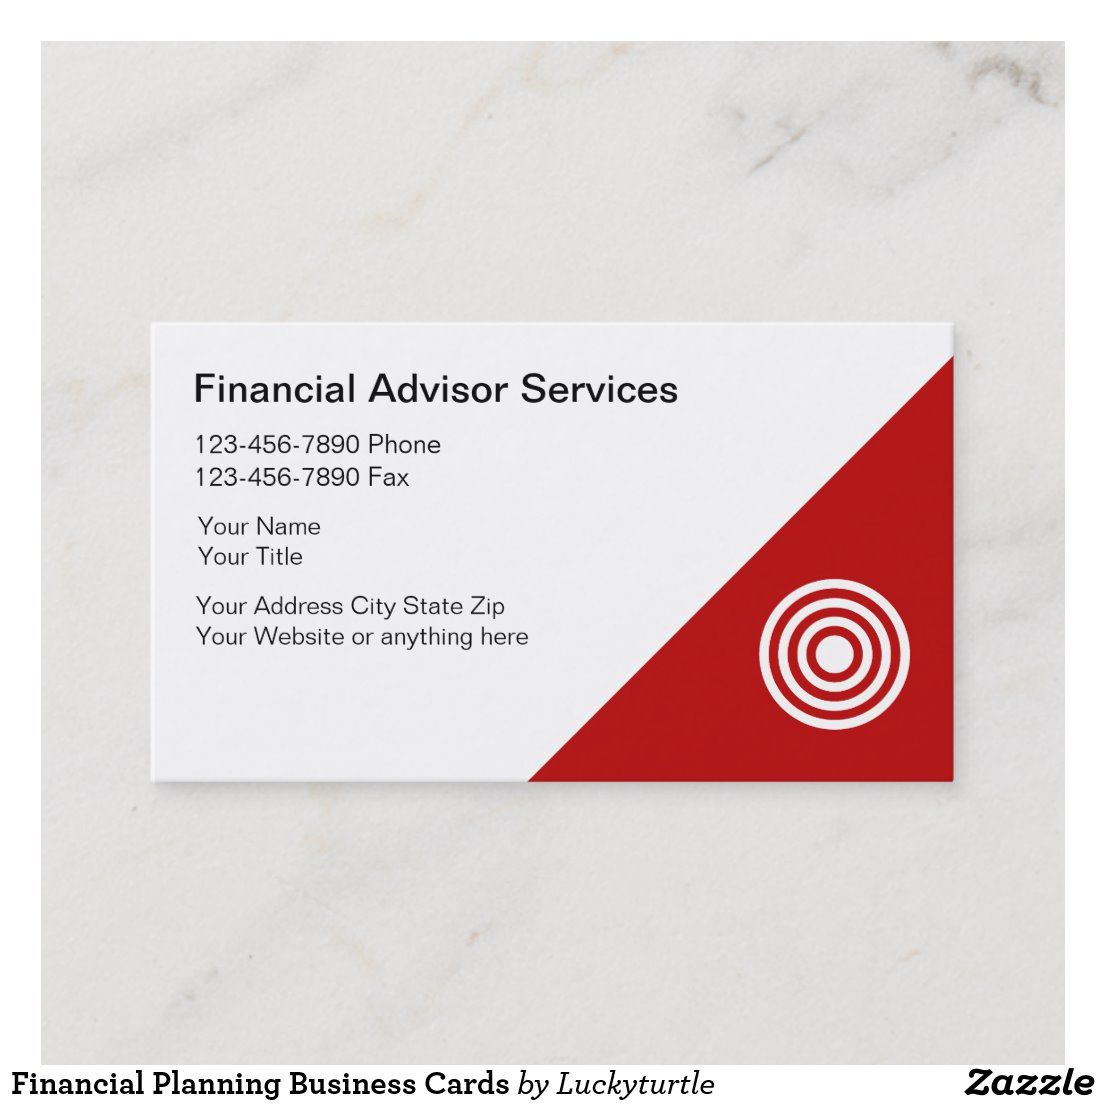 Financial Planning Business Cards Zazzle Com In 2021 Financial Planning Financial Money Financial